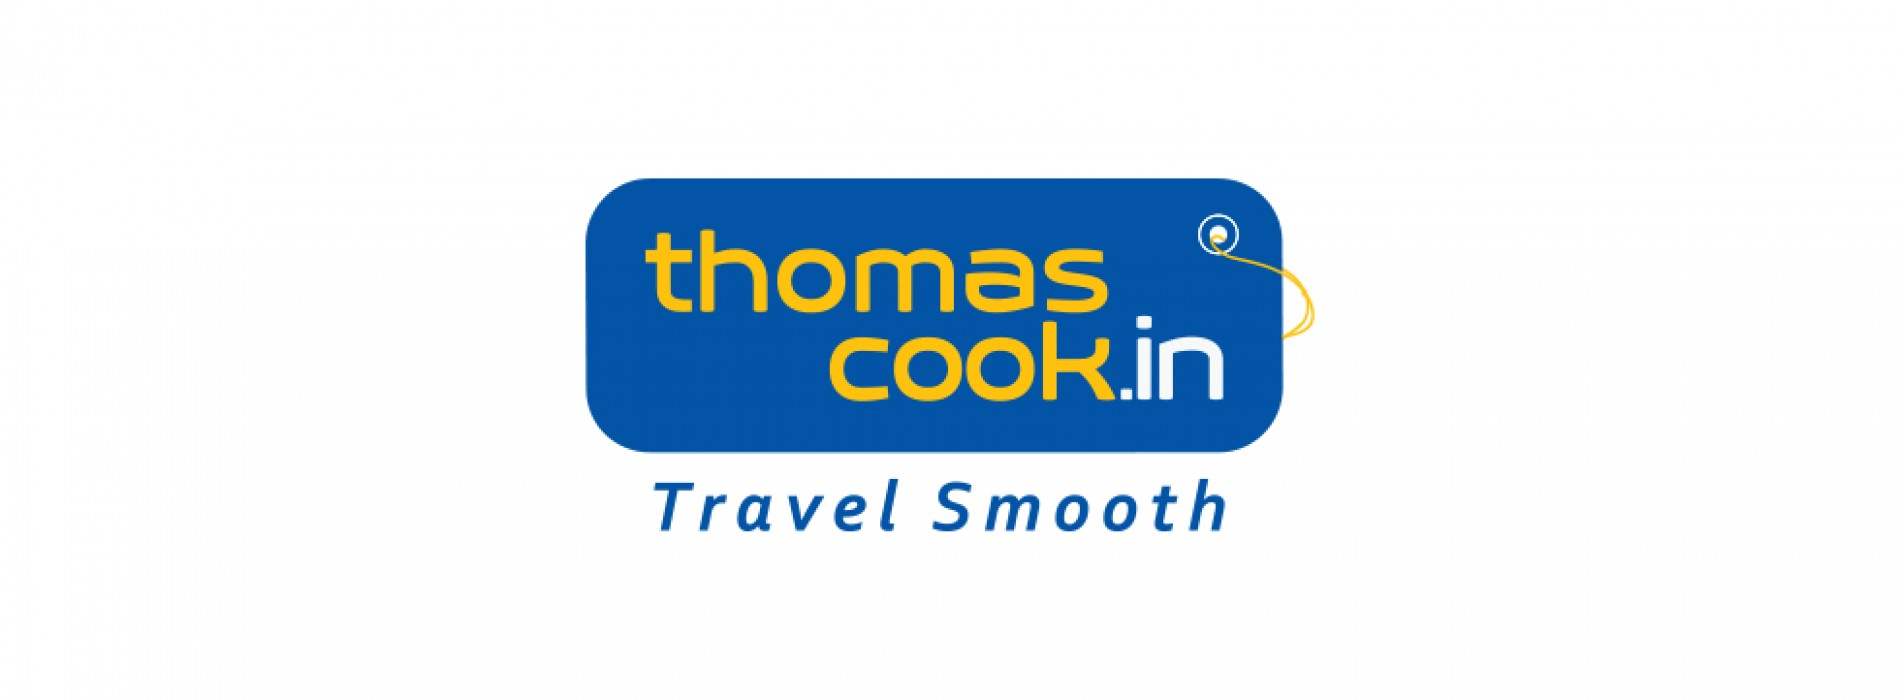 Thomas Cook India targets India's strongly emerging new decision makers– Children!